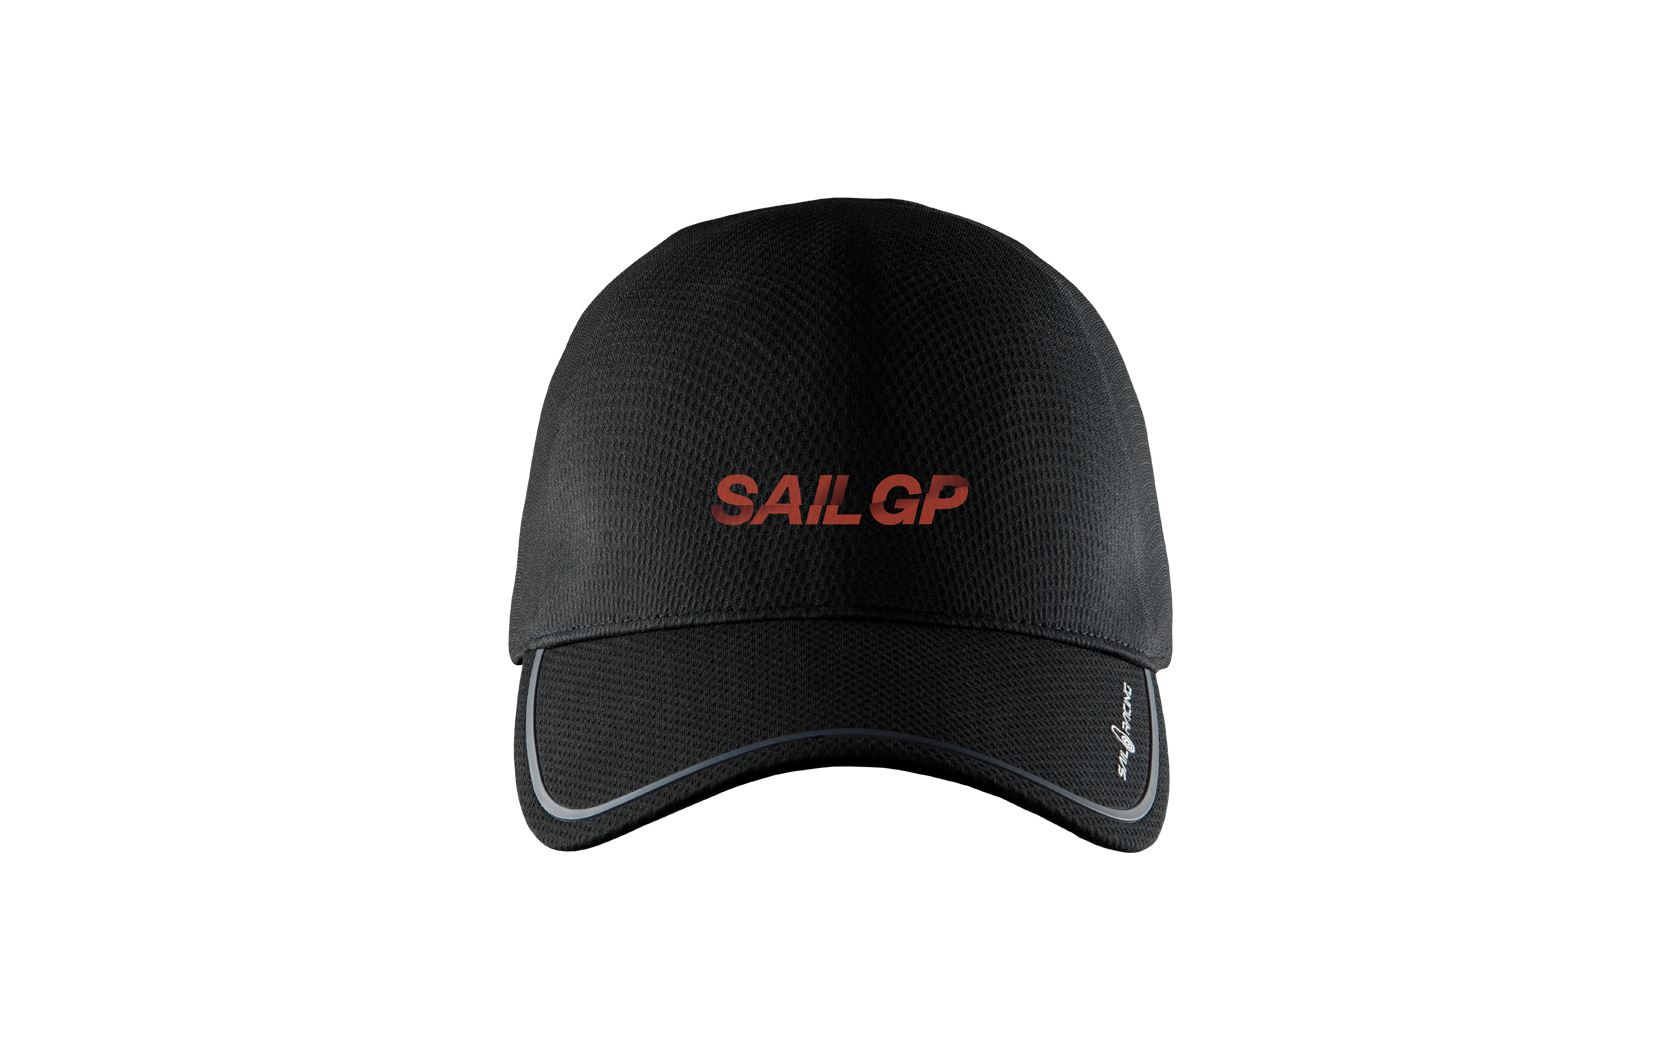 SAILGP TECH CAP